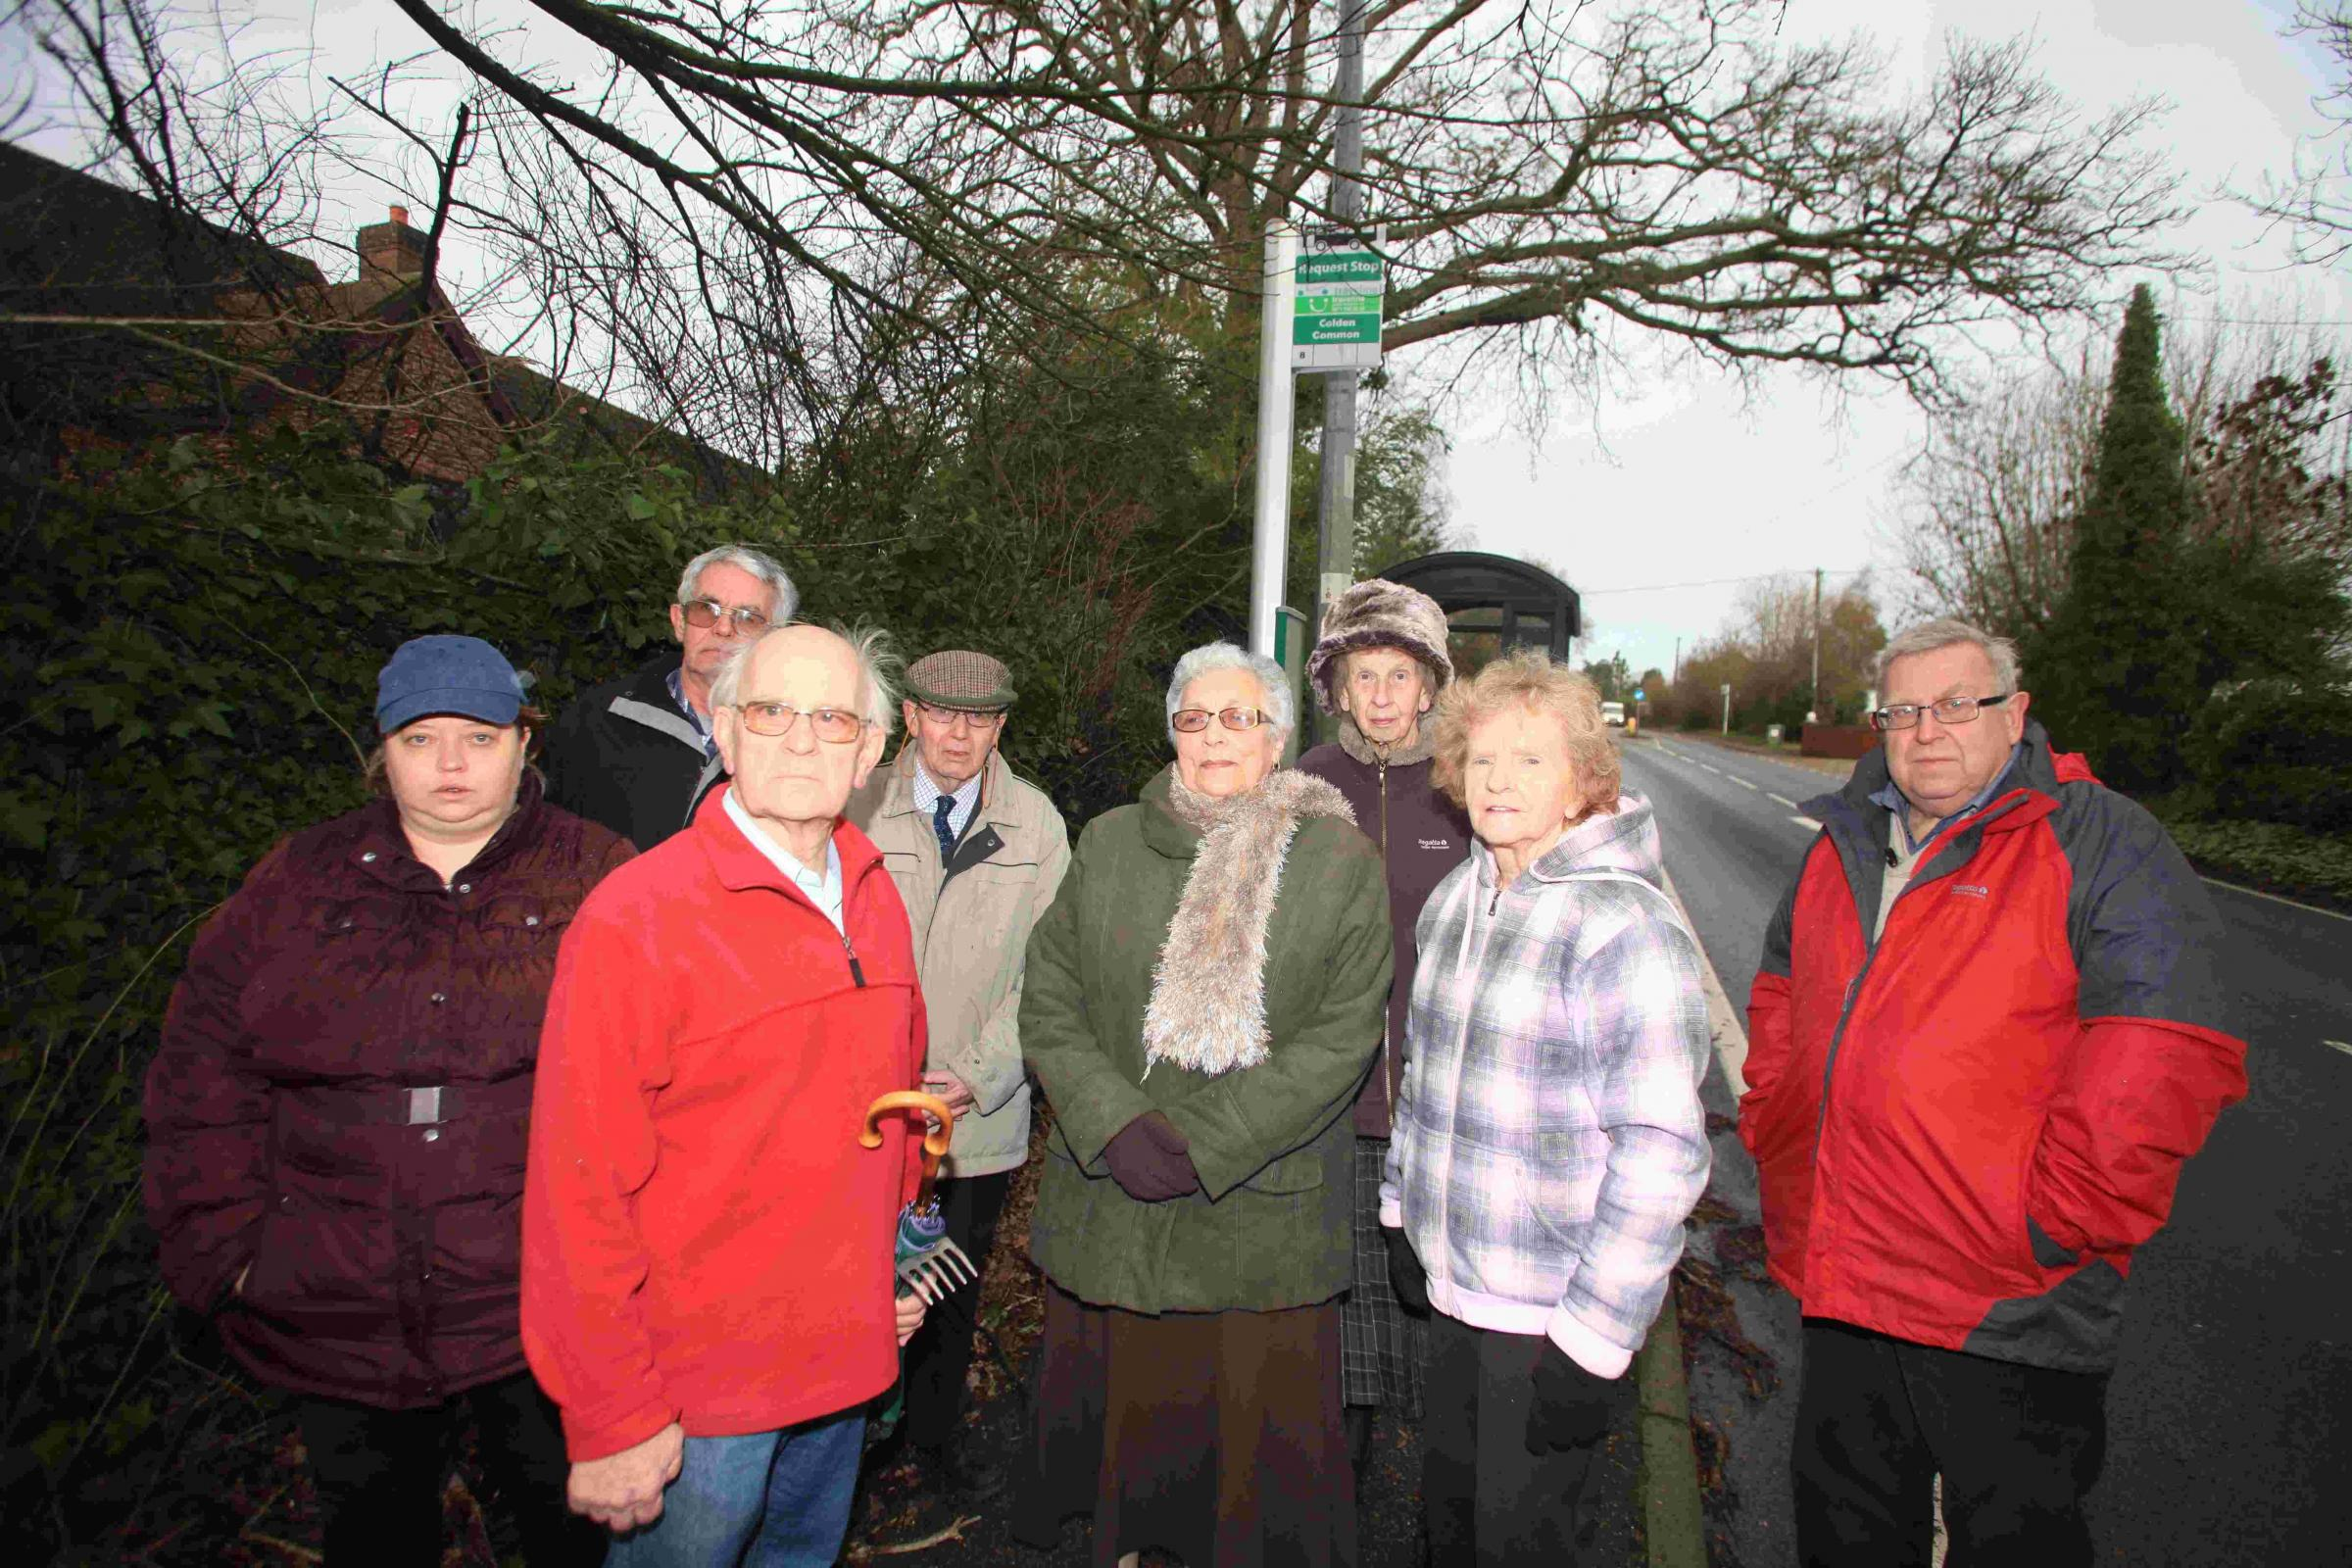 Roadworks leave Colden Common villagers stranded